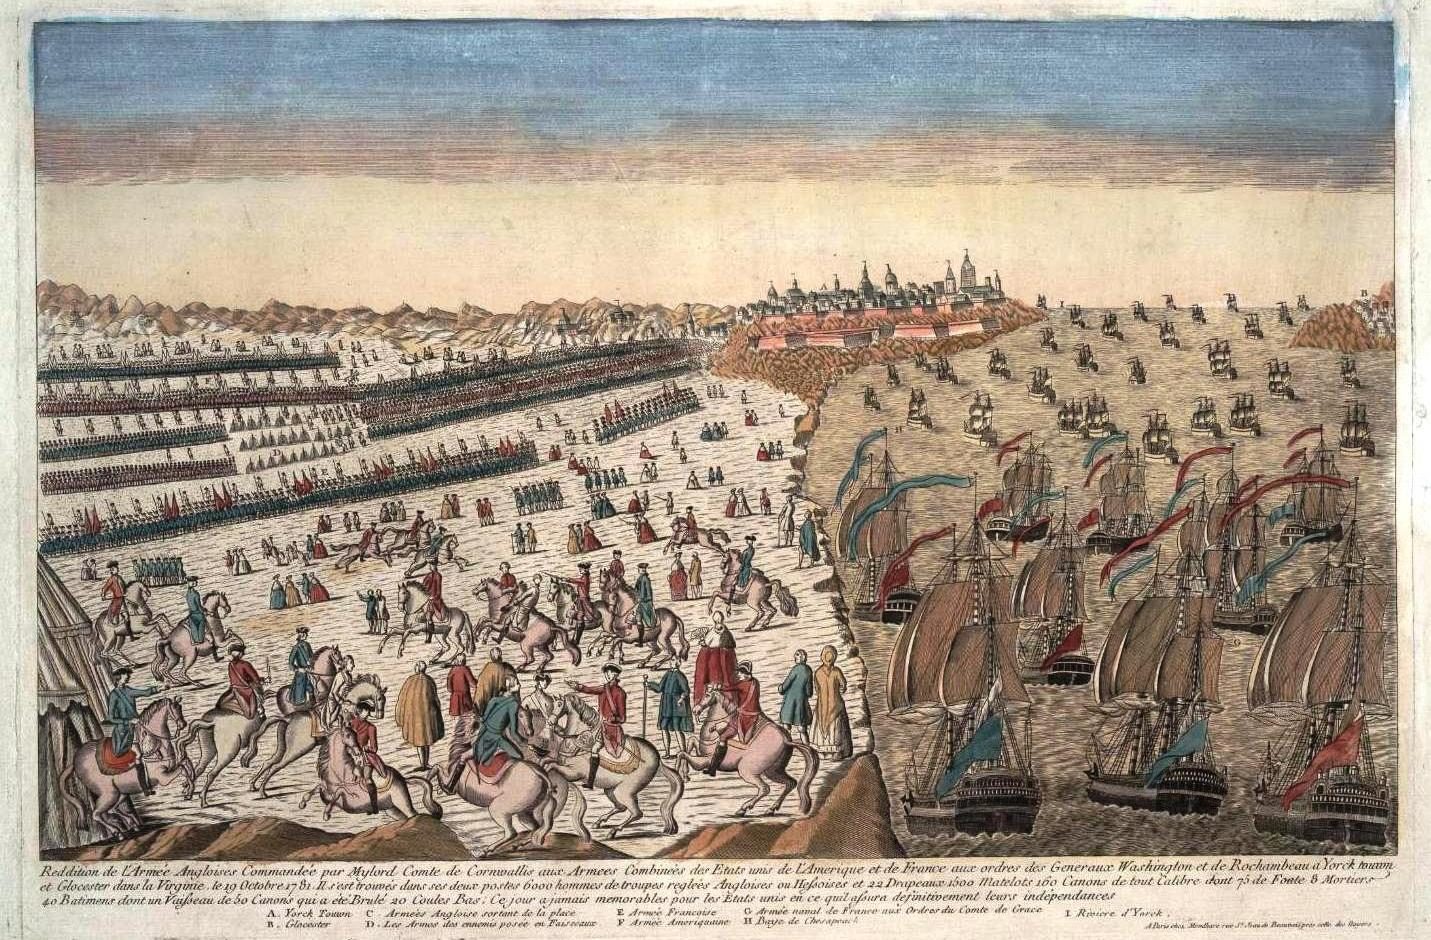 Overview of the capitulation of the British army at Yorktown, with the blockade of the French squadron. Artist unknown. Rough translation: